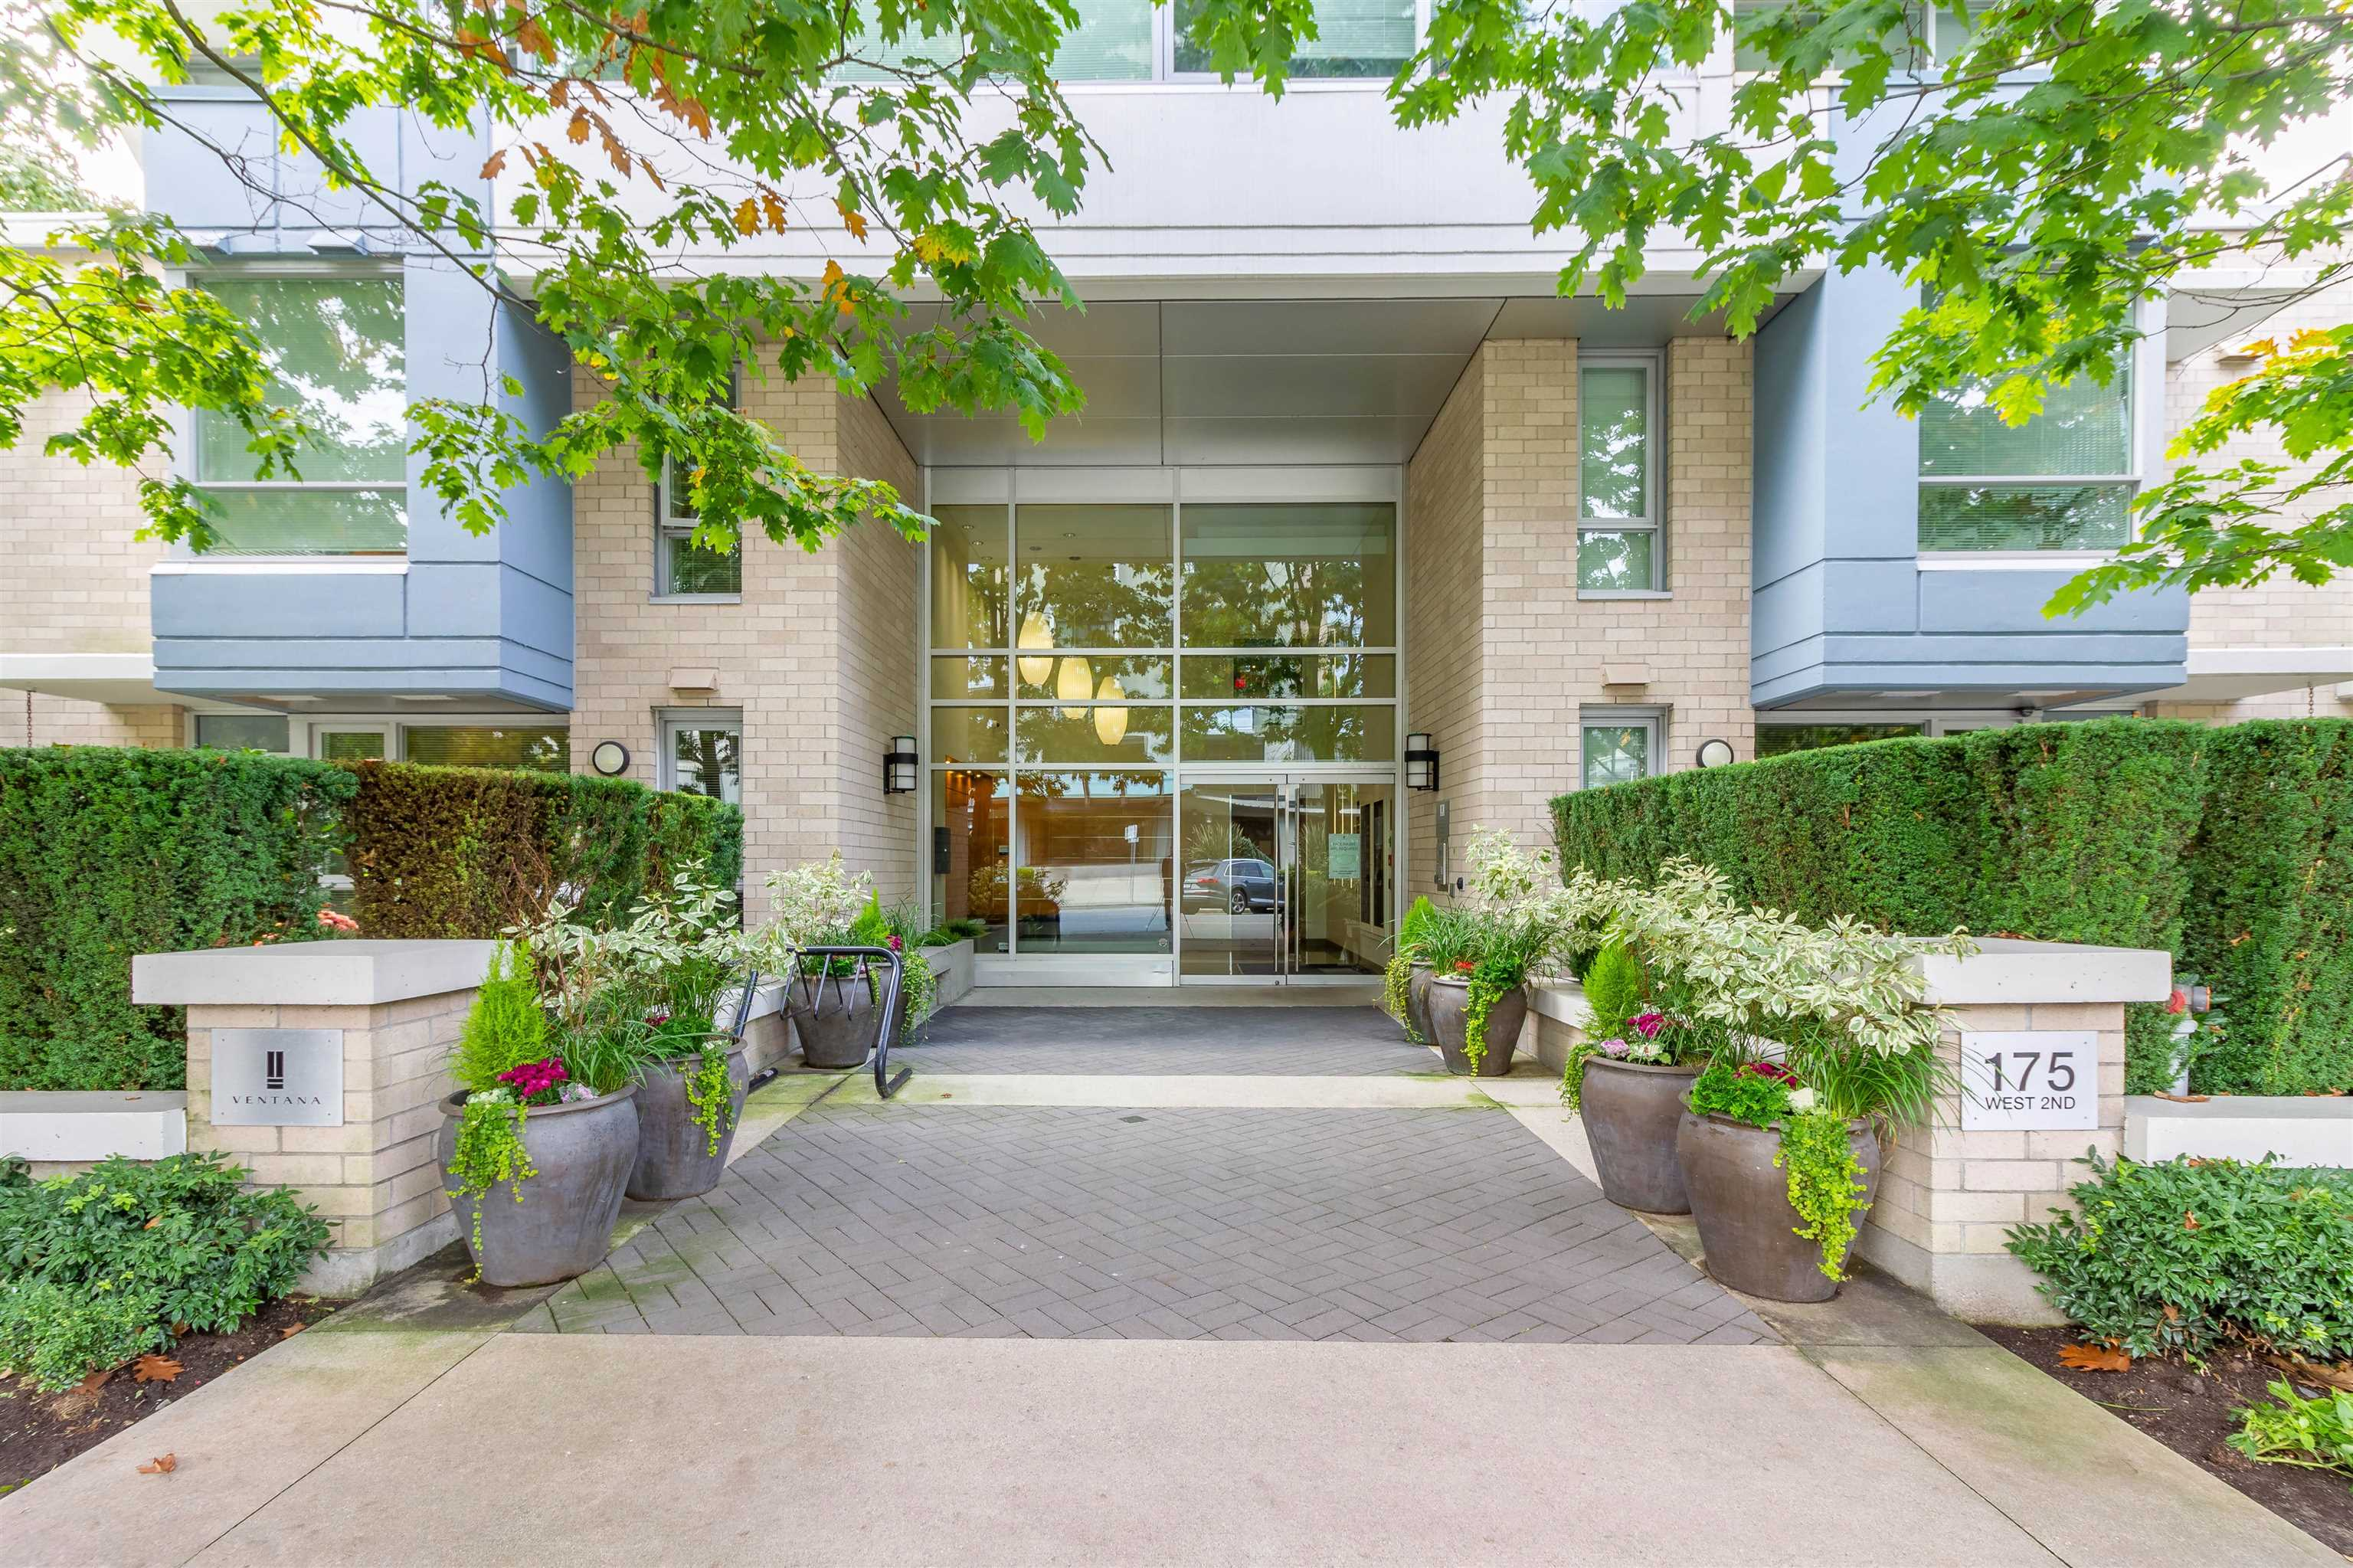 Listing image of 208 175 W 2ND STREET